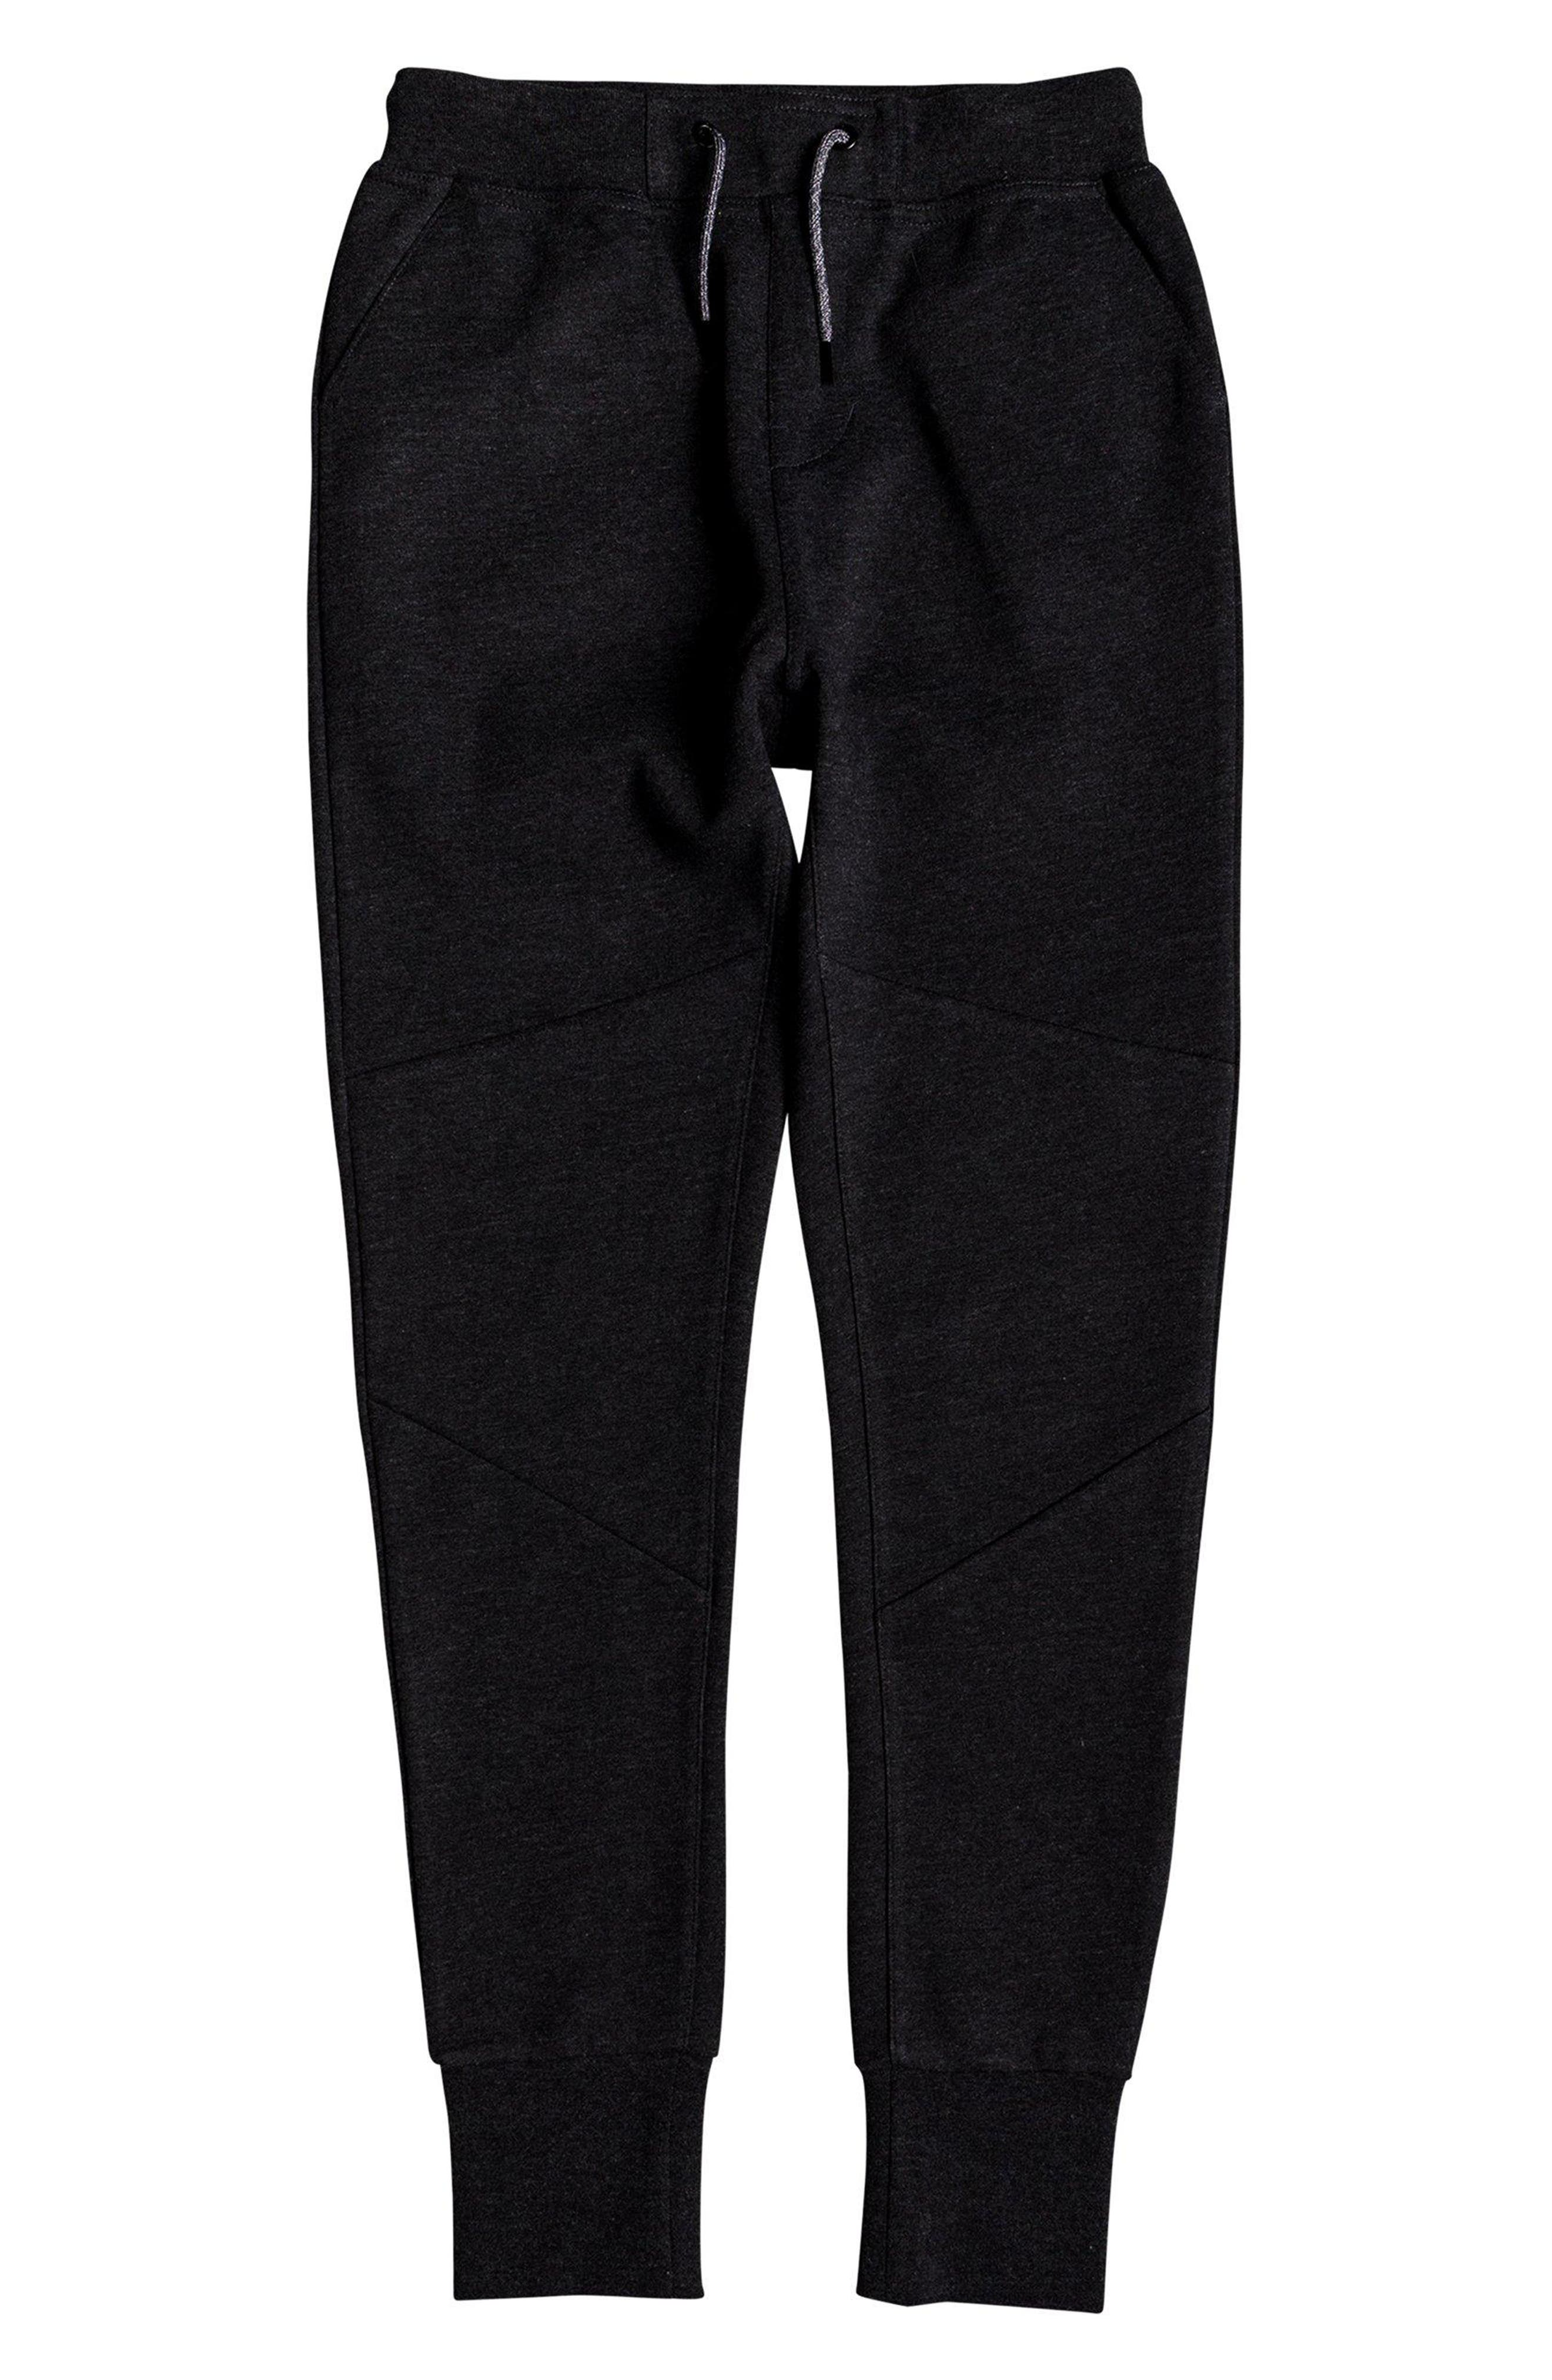 QUIKSILVER Izu Sula Jogger Pants, Main, color, 020